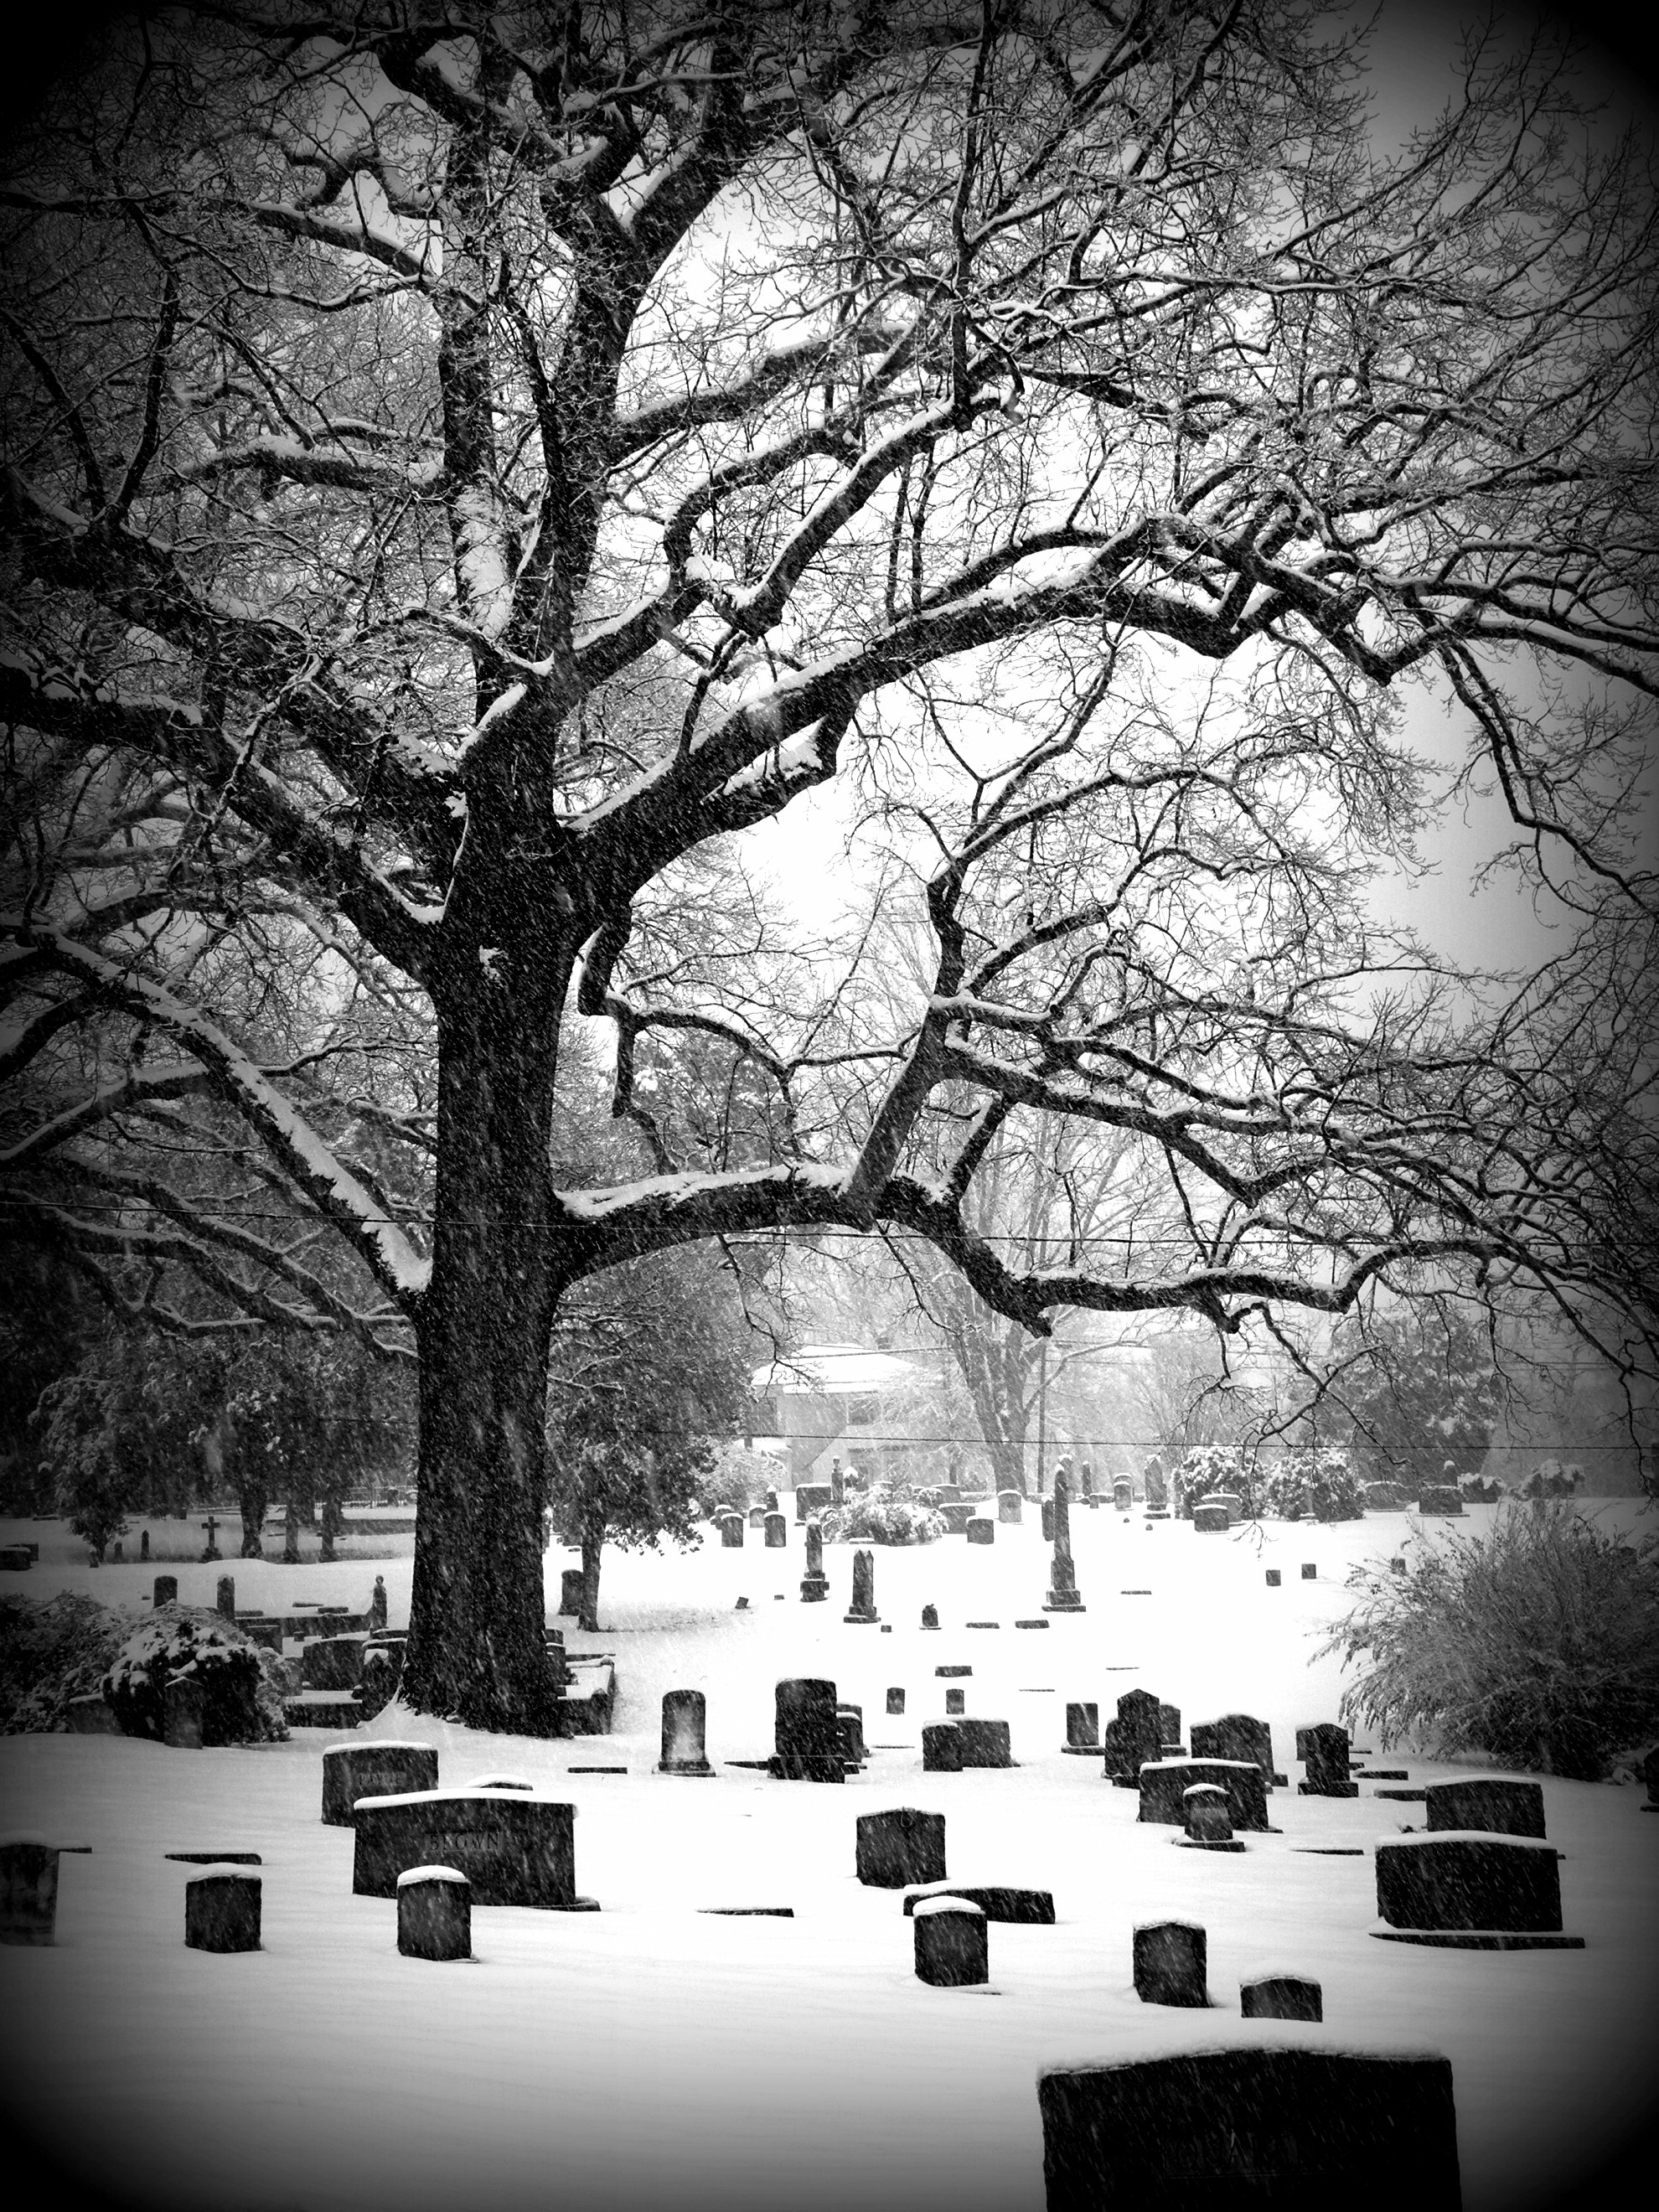 The cemetery in Charlottesville, Virginia, USA in the snow